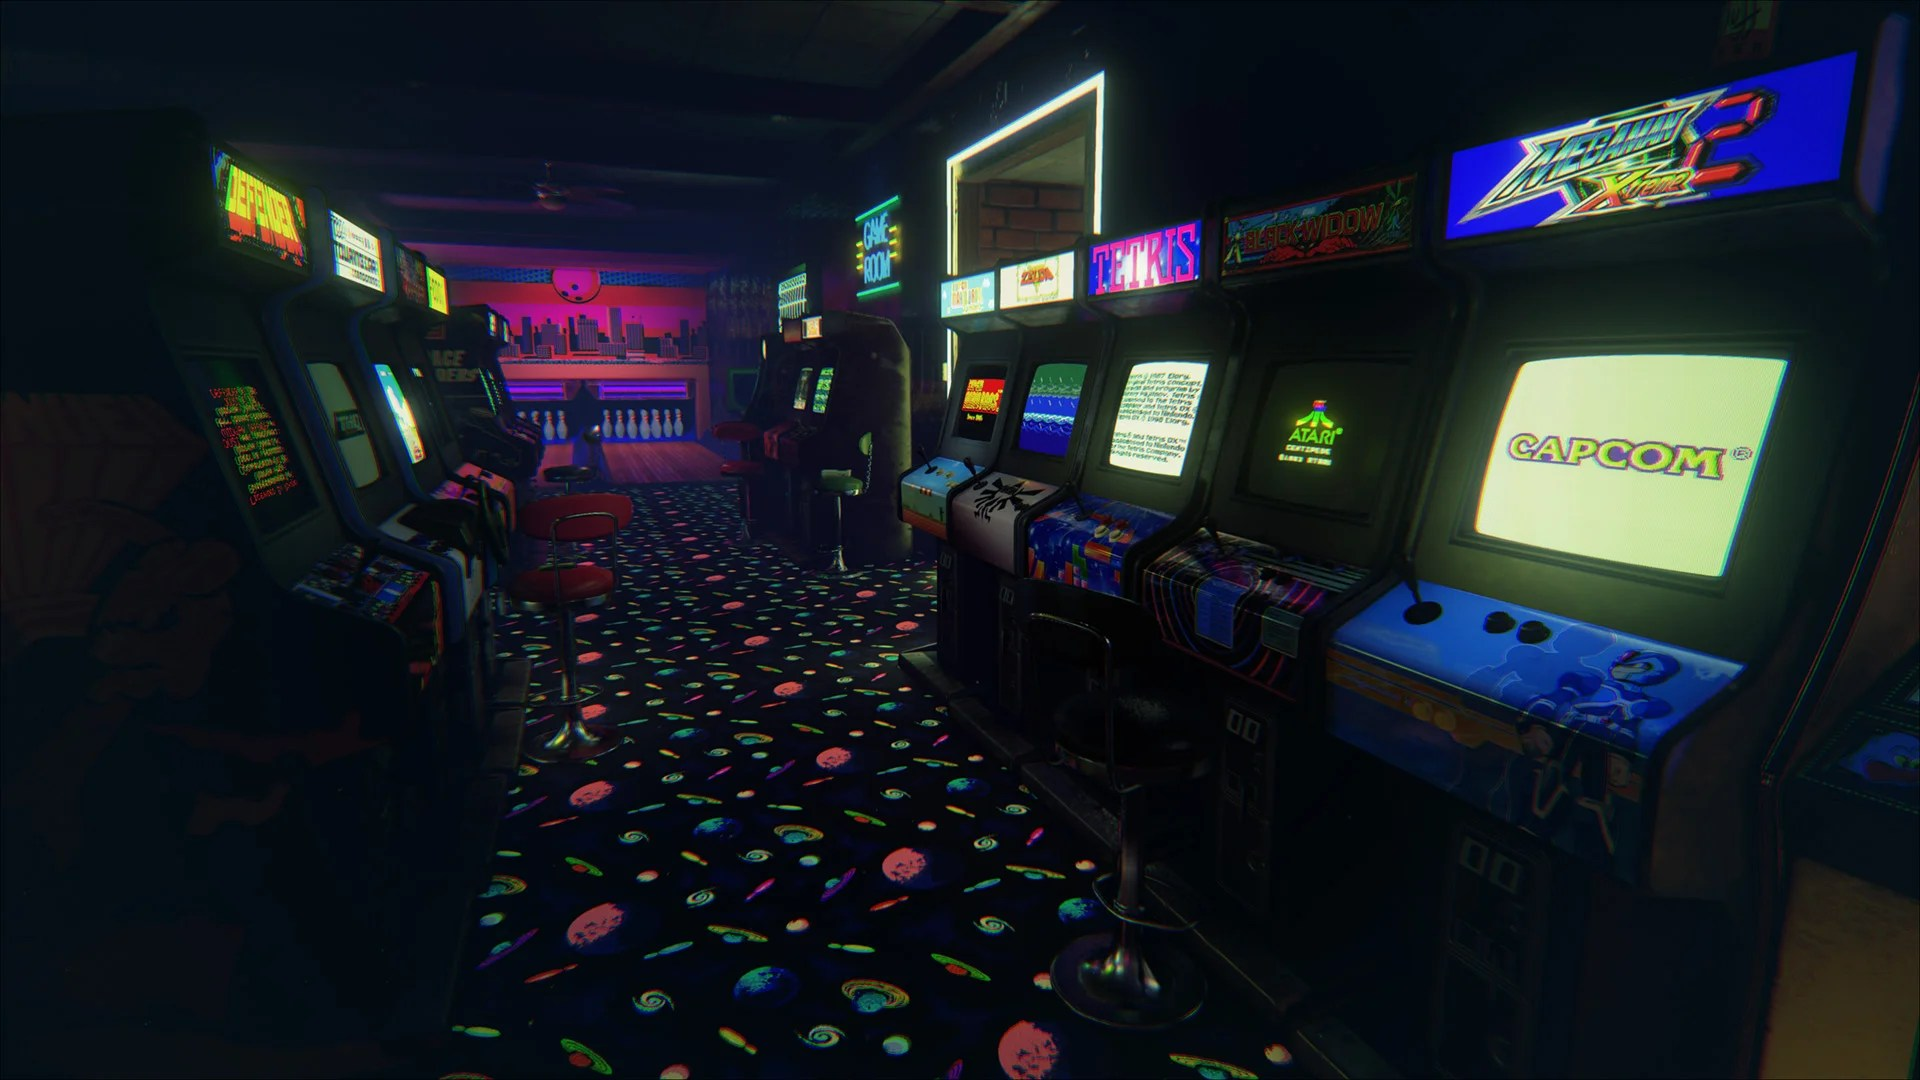 This Amazing 80s Arcade Is The Best Virtual Reality Trip Yet